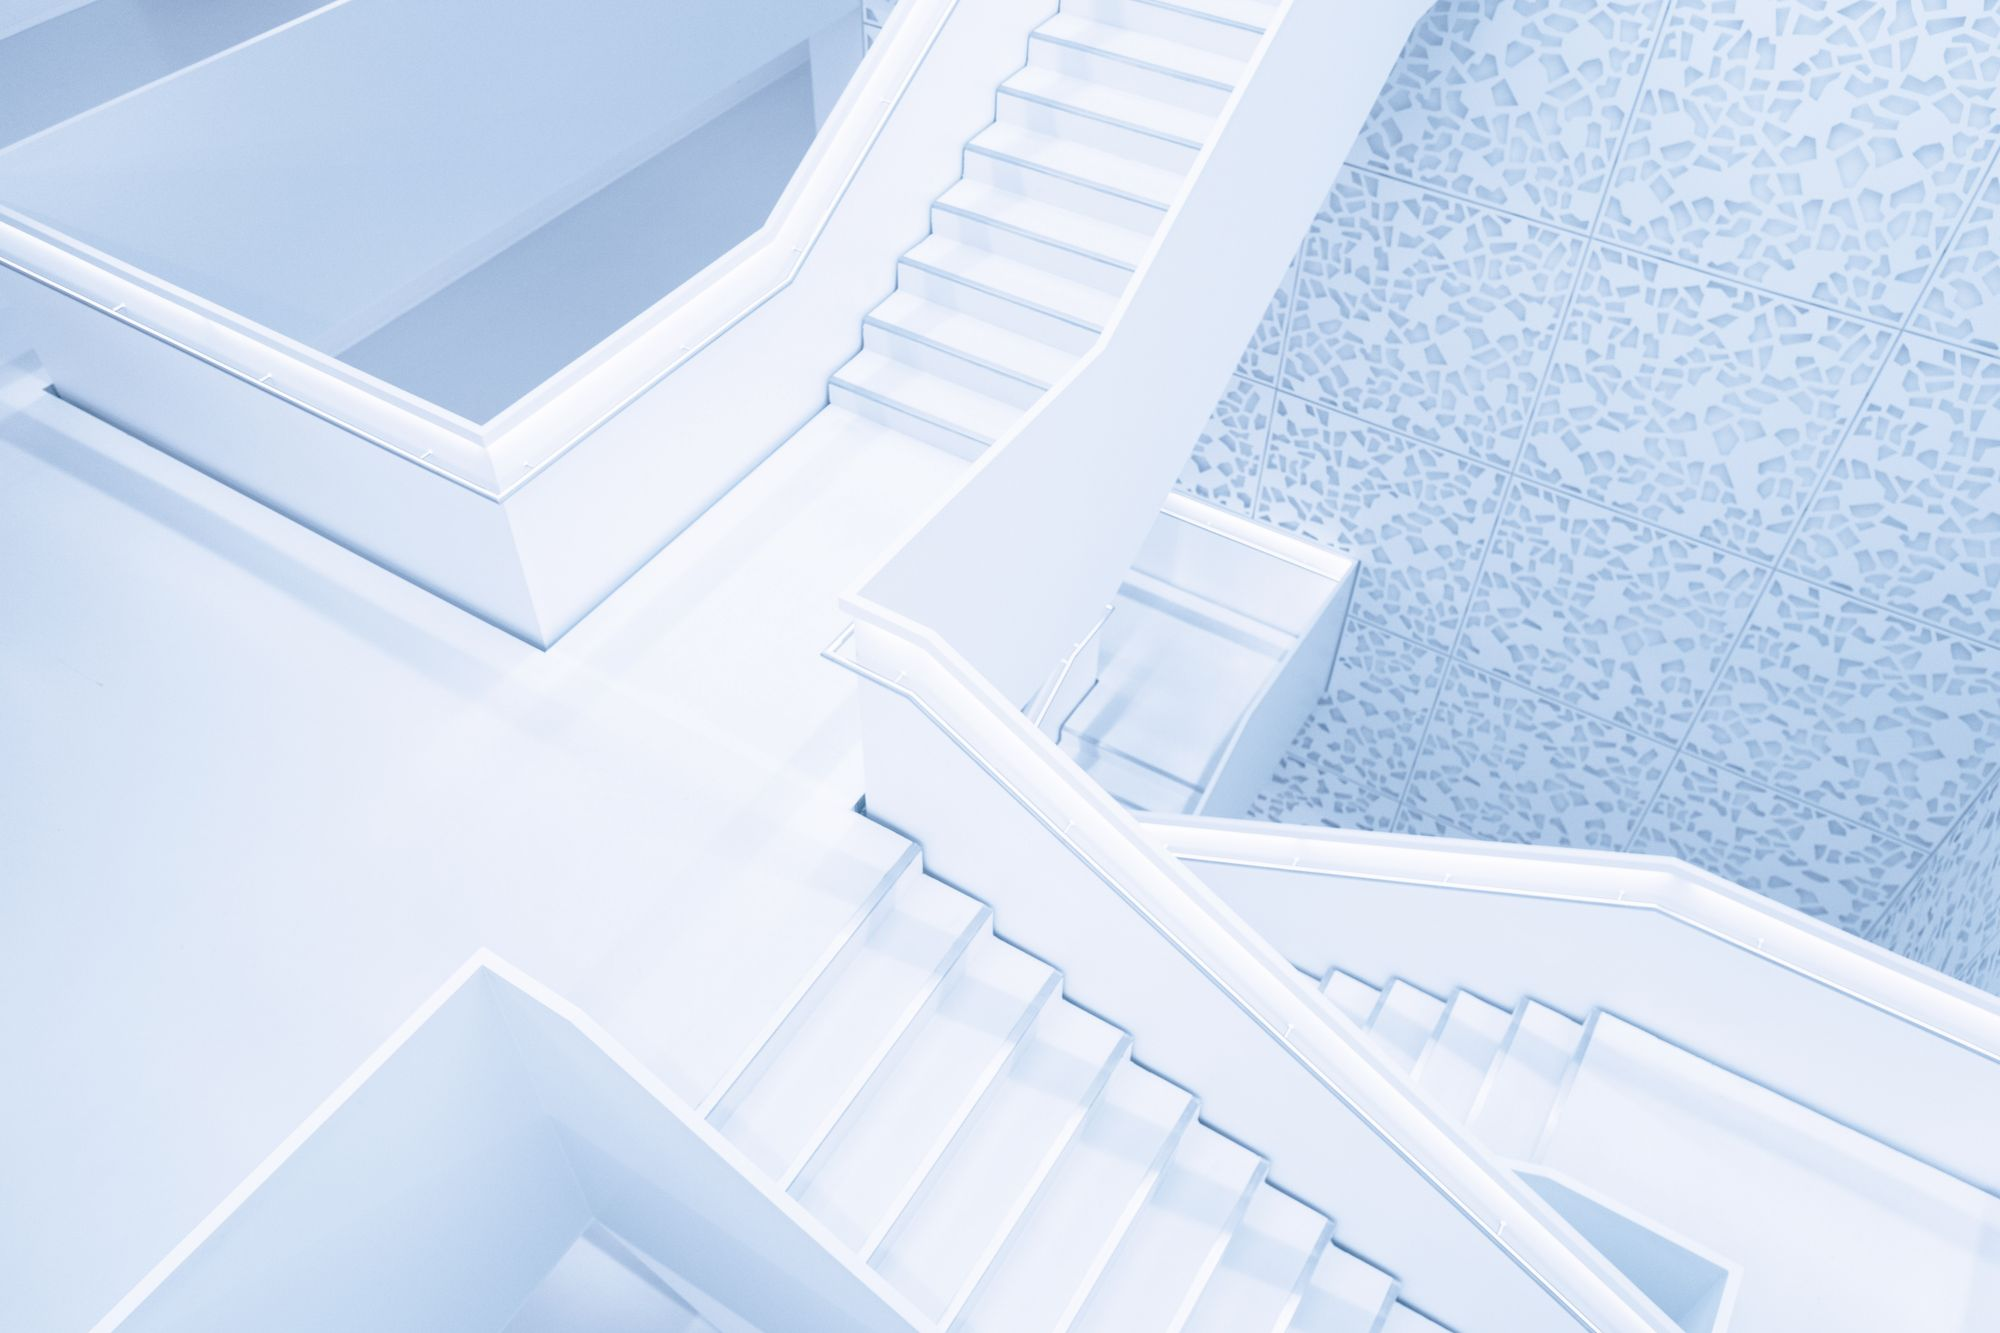 Antifragility at Work: Change is the Only Constant